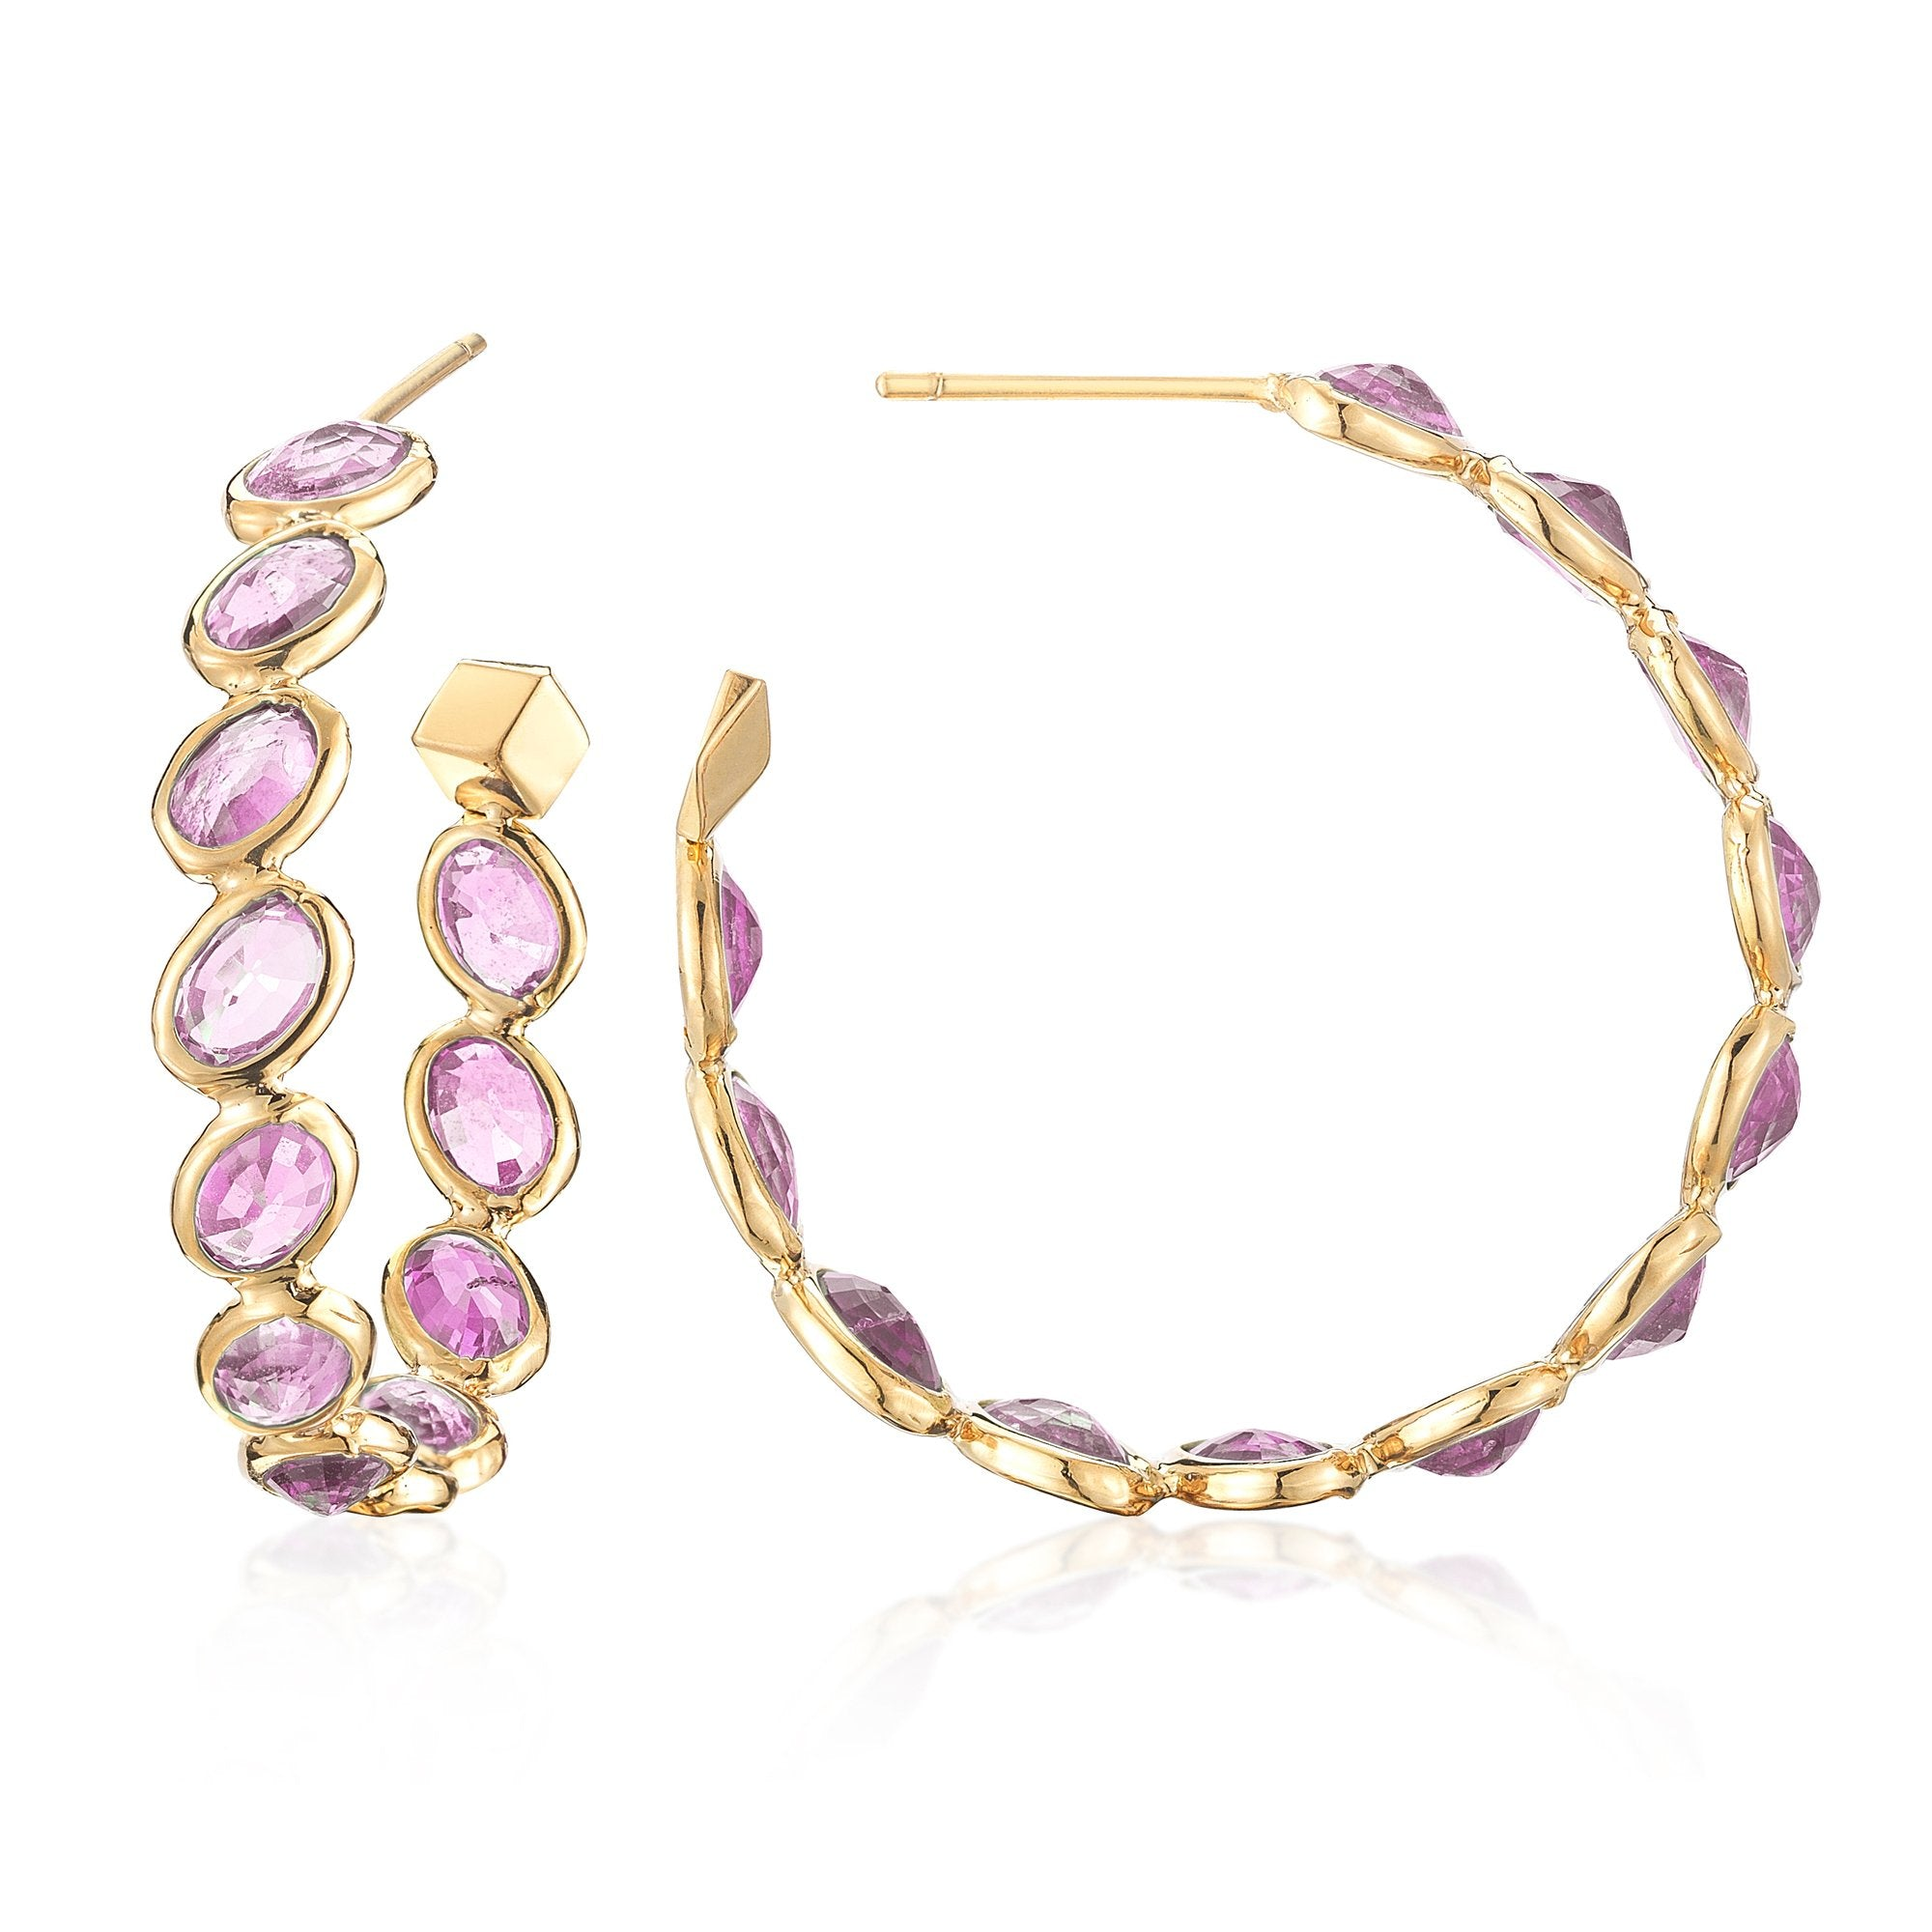 epsys triple sgc cuffs bracelets pink friendship bracelet sapphire and fine gold stone emerald silk jewellery orbit uk